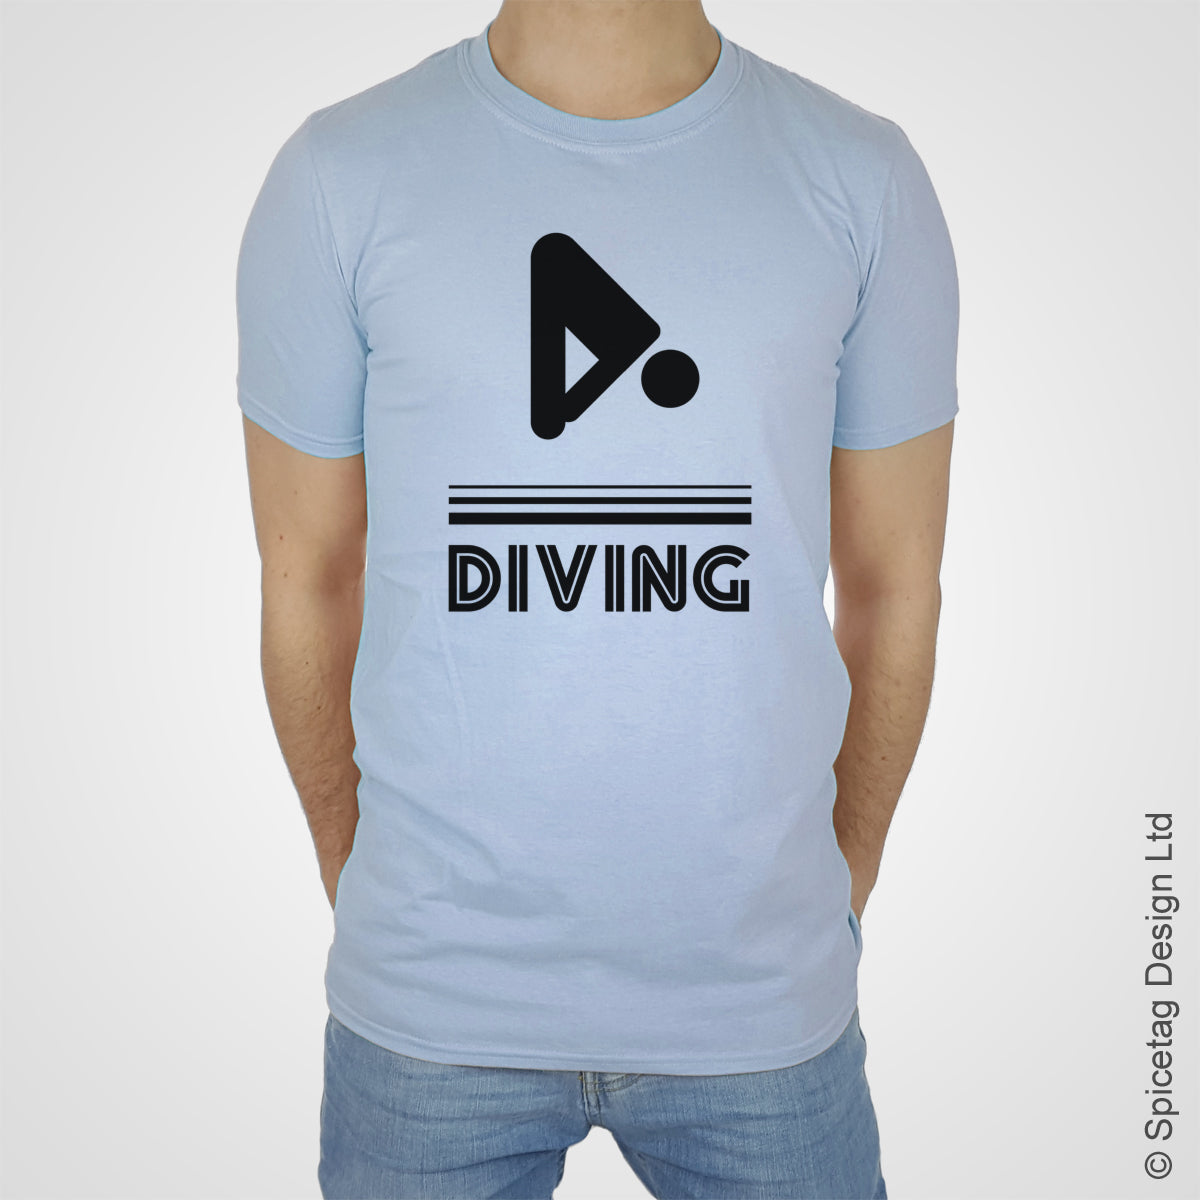 Colours diving dive swim swimming T-shirt Tshirt T shirt Tee clothing clothes fashion style sport sports fan olympics athletics track field health fitness world competition champion